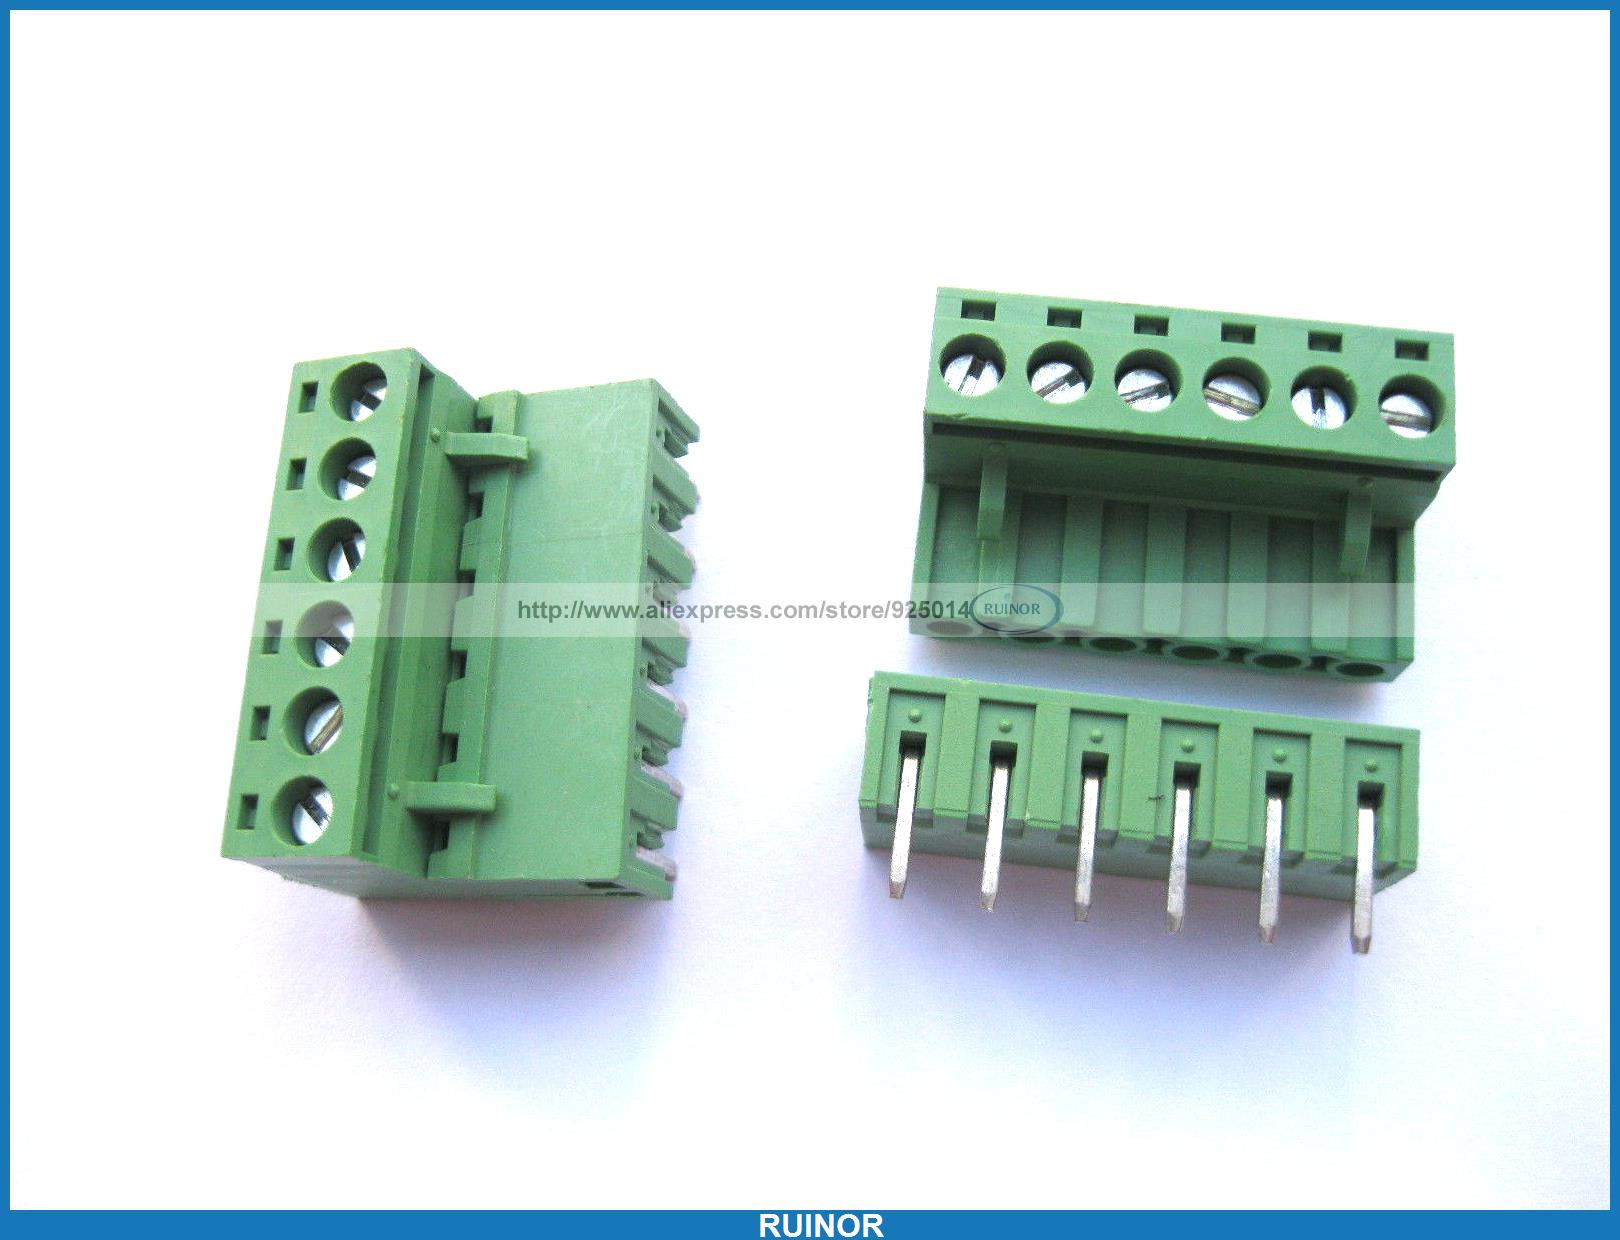 50 Pcs 5 08mm Angle 6 Pin Screw Terminal Block Connector Pluggable Type Green сандалии betsy 977784 01 01 черный р 37 ru